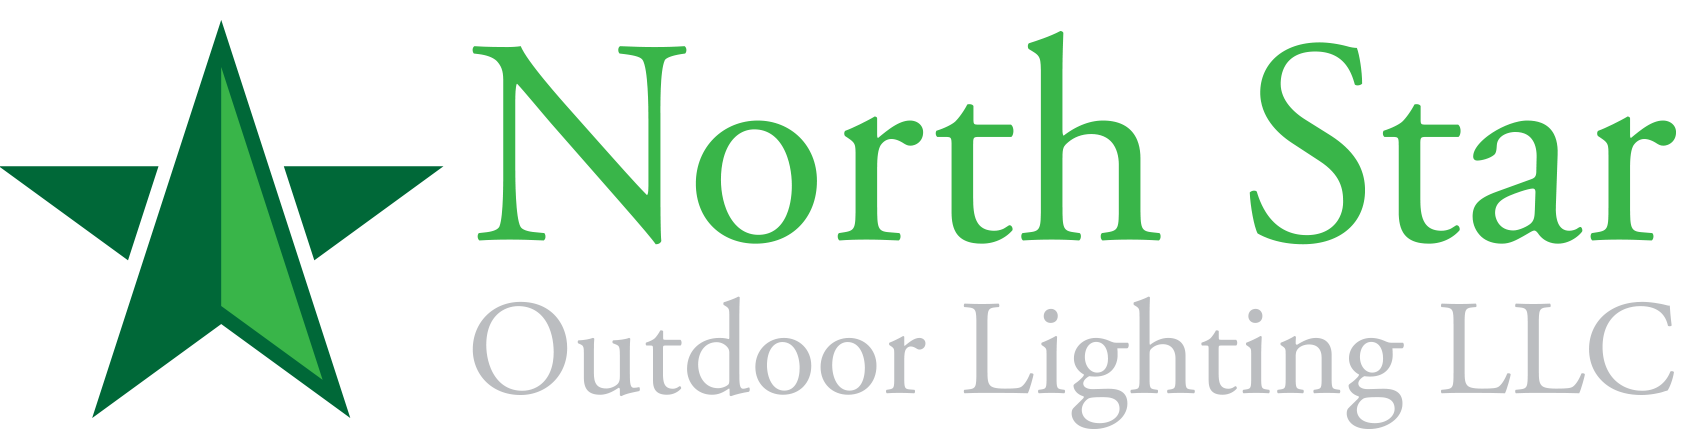 North Star Outdoor Lighting LLC